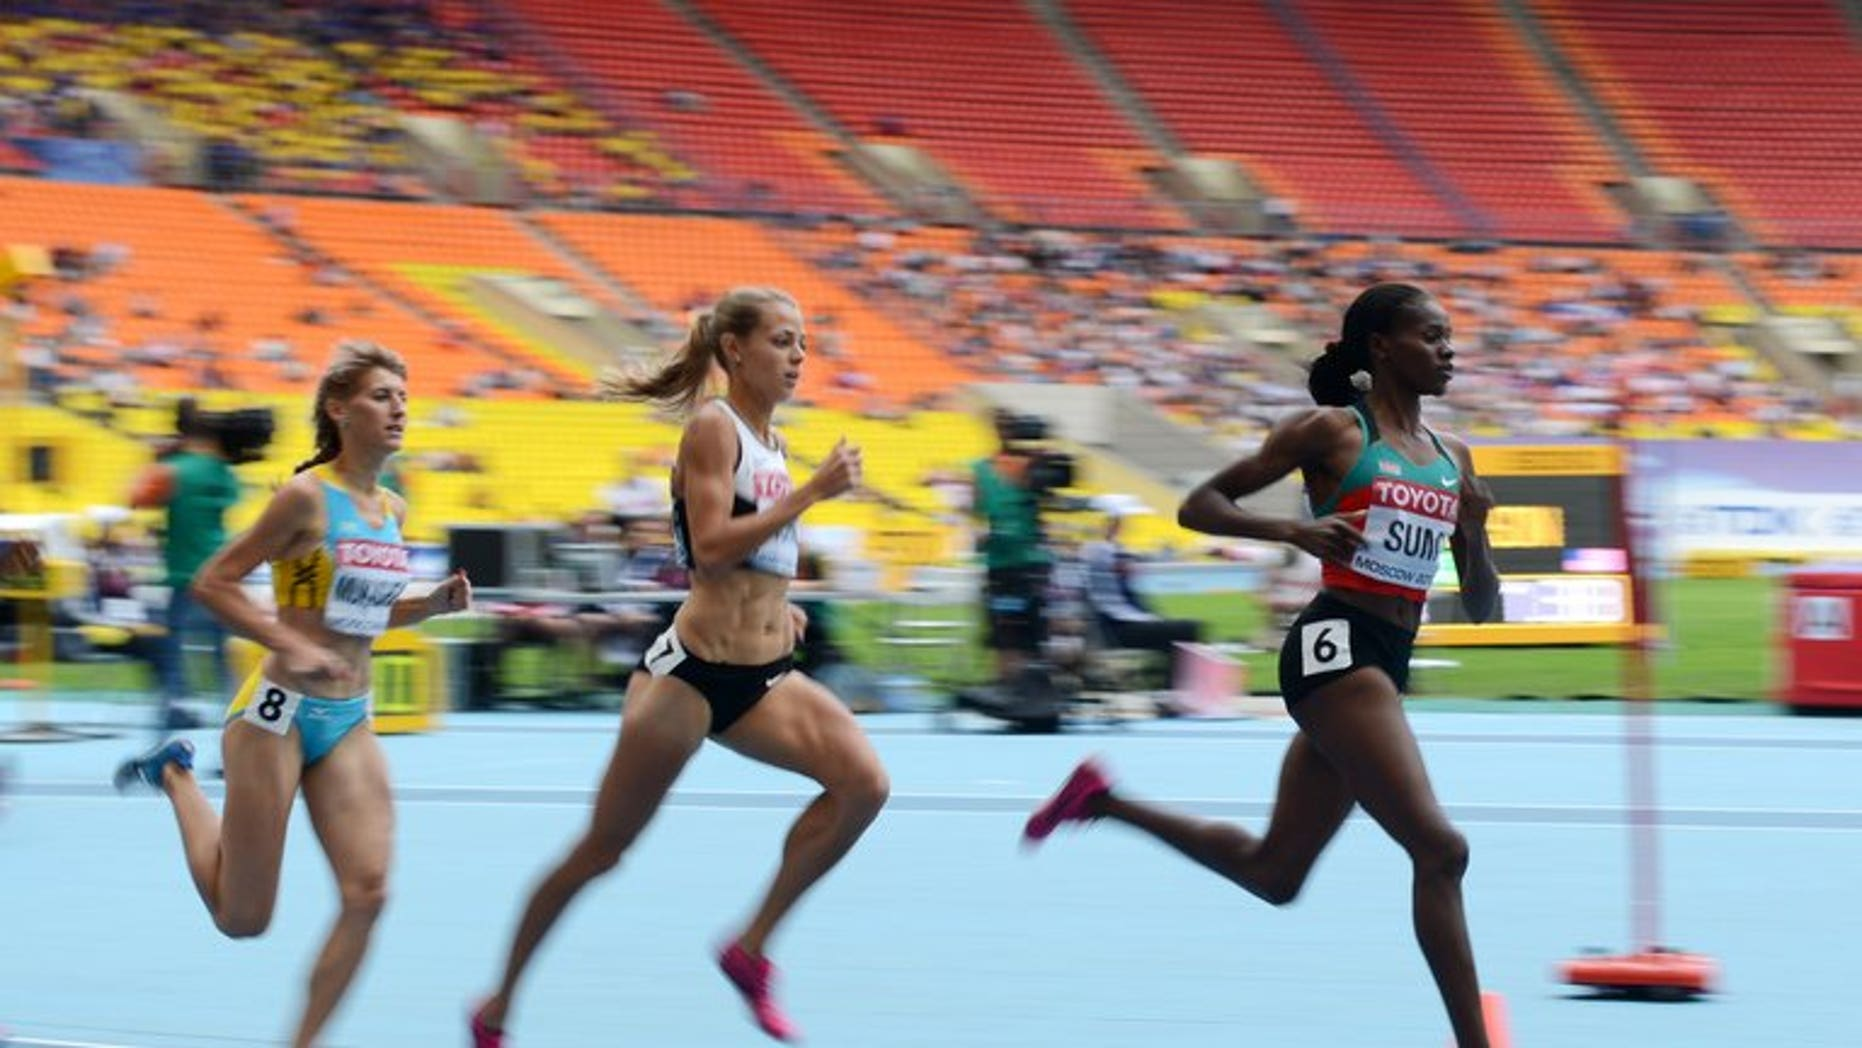 Eunice Sum (right) runs in the World Championships women's 800 metres heats in Moscow on August 15. The 25-year-old Kenyan timed 1min 57.38sec with Russia's defending champion Mariya Savinova taking silver (1:57.80) and Brenda Martinez of the United States the bronze (1:57.91).